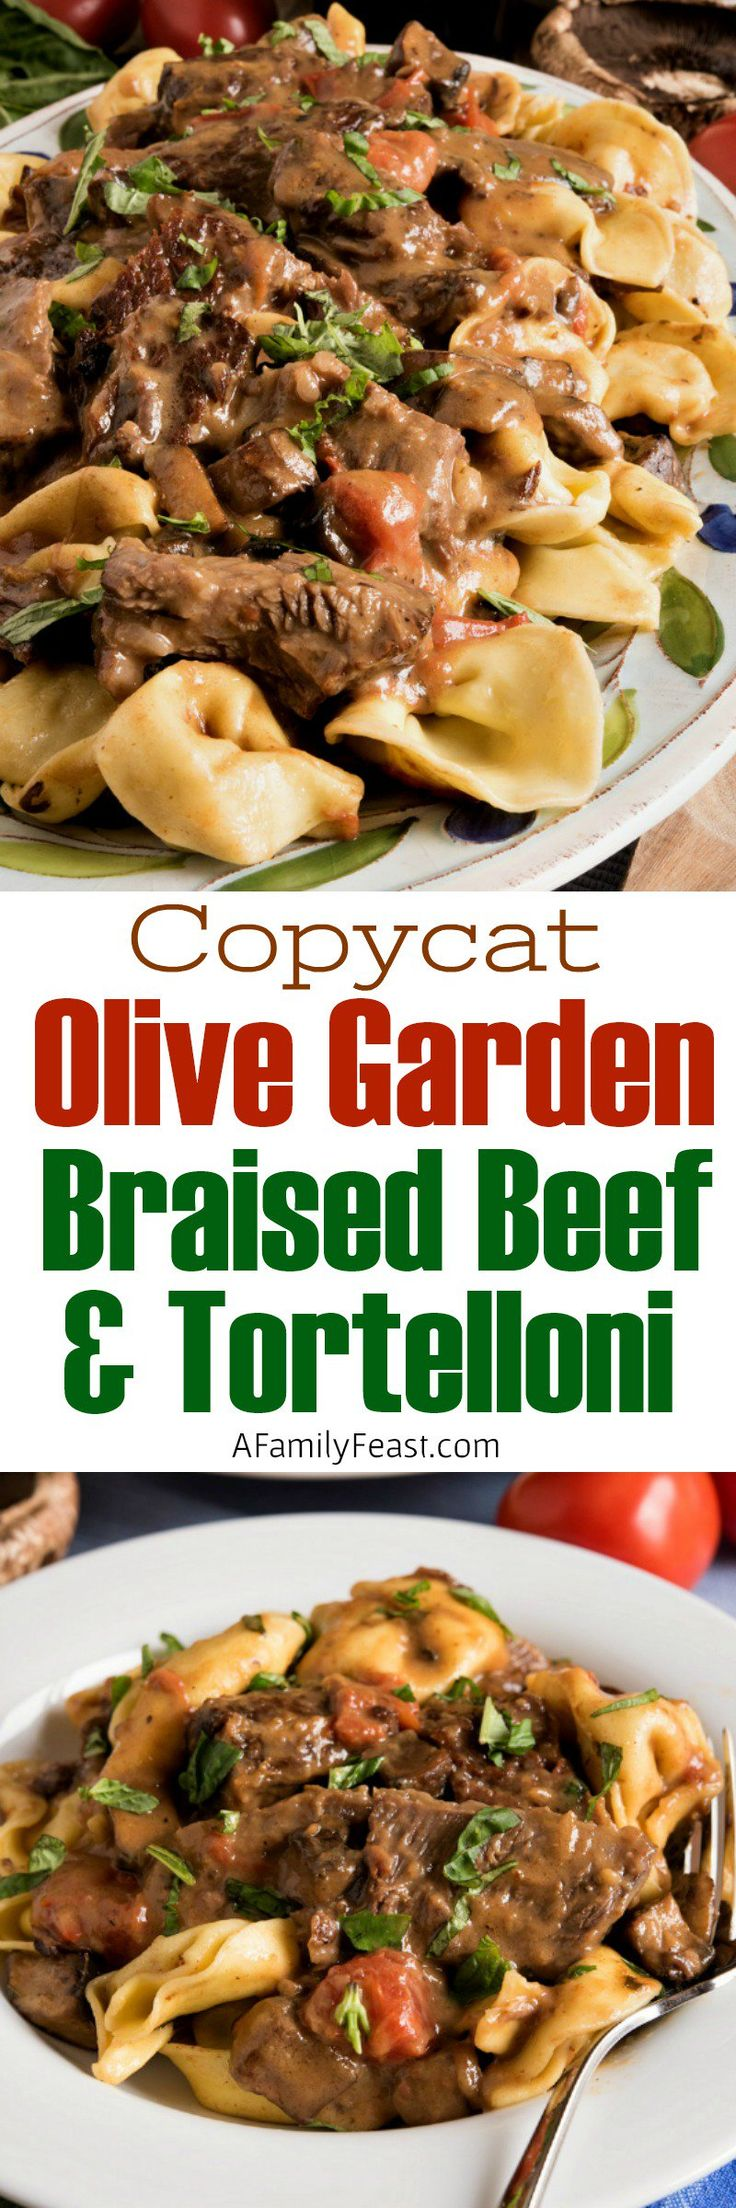 This restaurant-quality Braised Beef and Tortelloni is loaded with tender chunks of beef in the most amazing Marsala wine sauce, and spooned over Asiago cheese tortelloni.